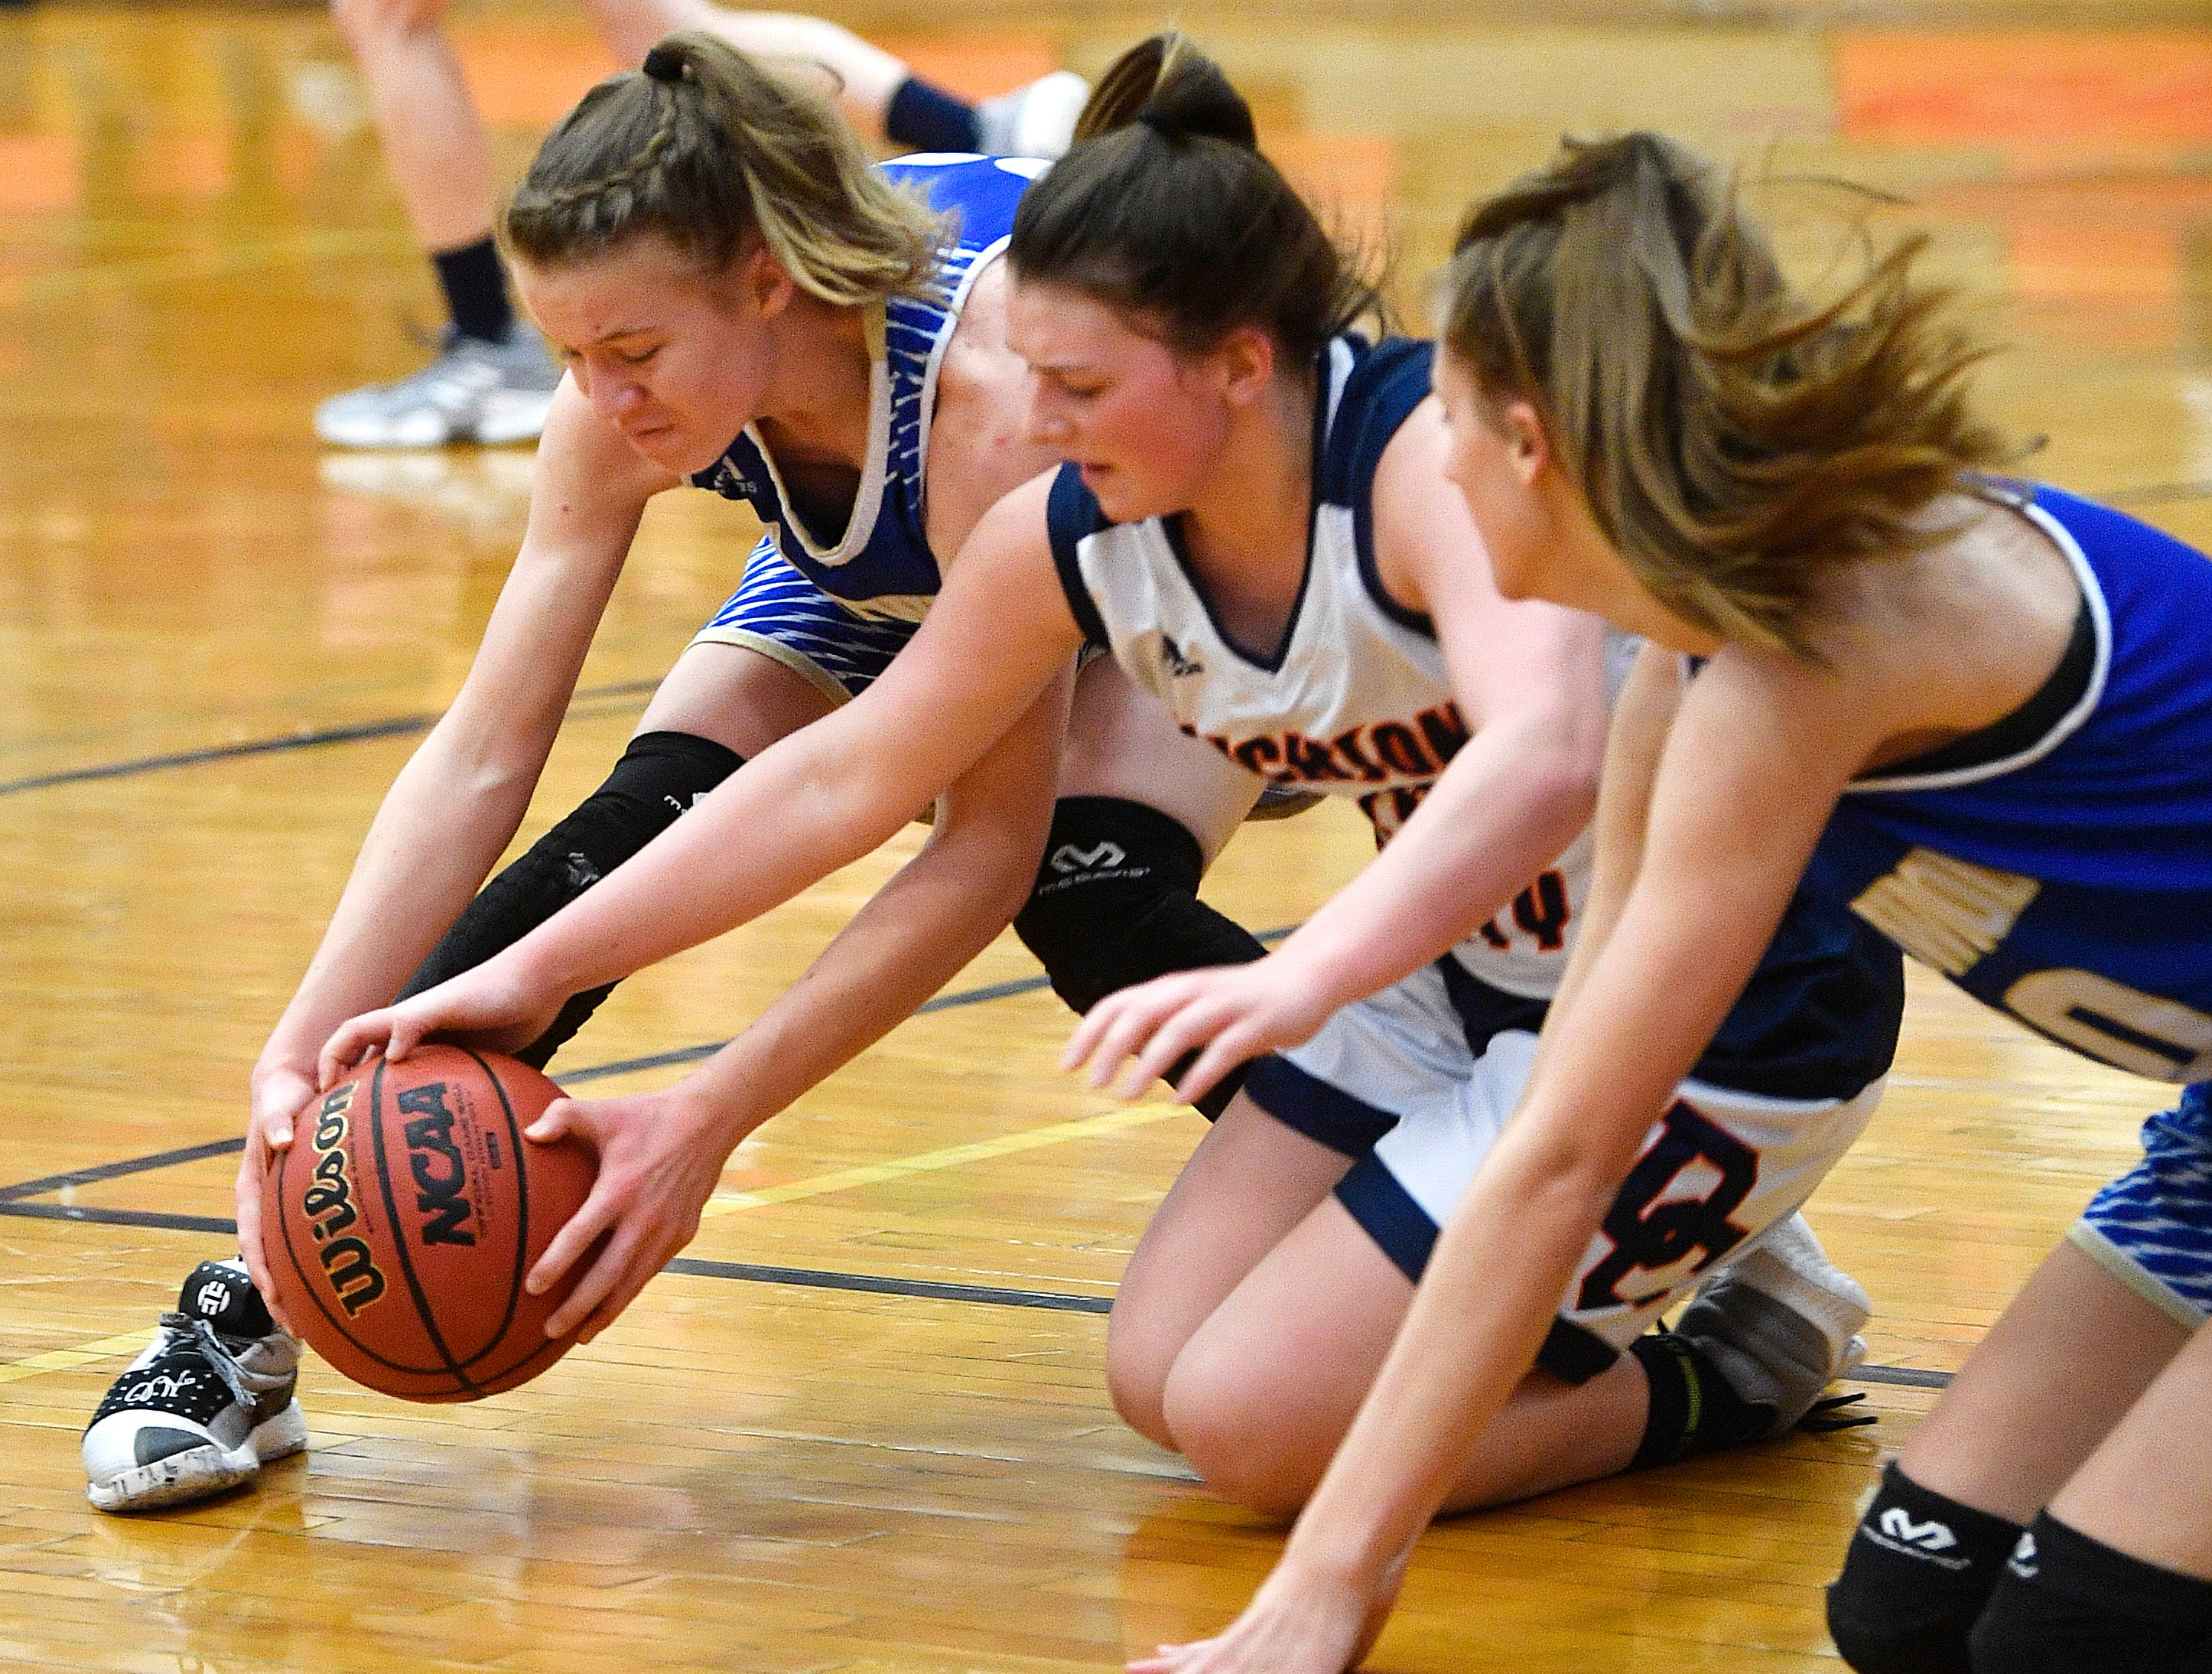 Amelia Osgood, 32, and KK Curtis, 20, fight for a loose ball as Dickson plays Brentwood in the District 11-AAA girls basketball championship Monday, Feb. 18, 2019, in Dickson, Tenn.